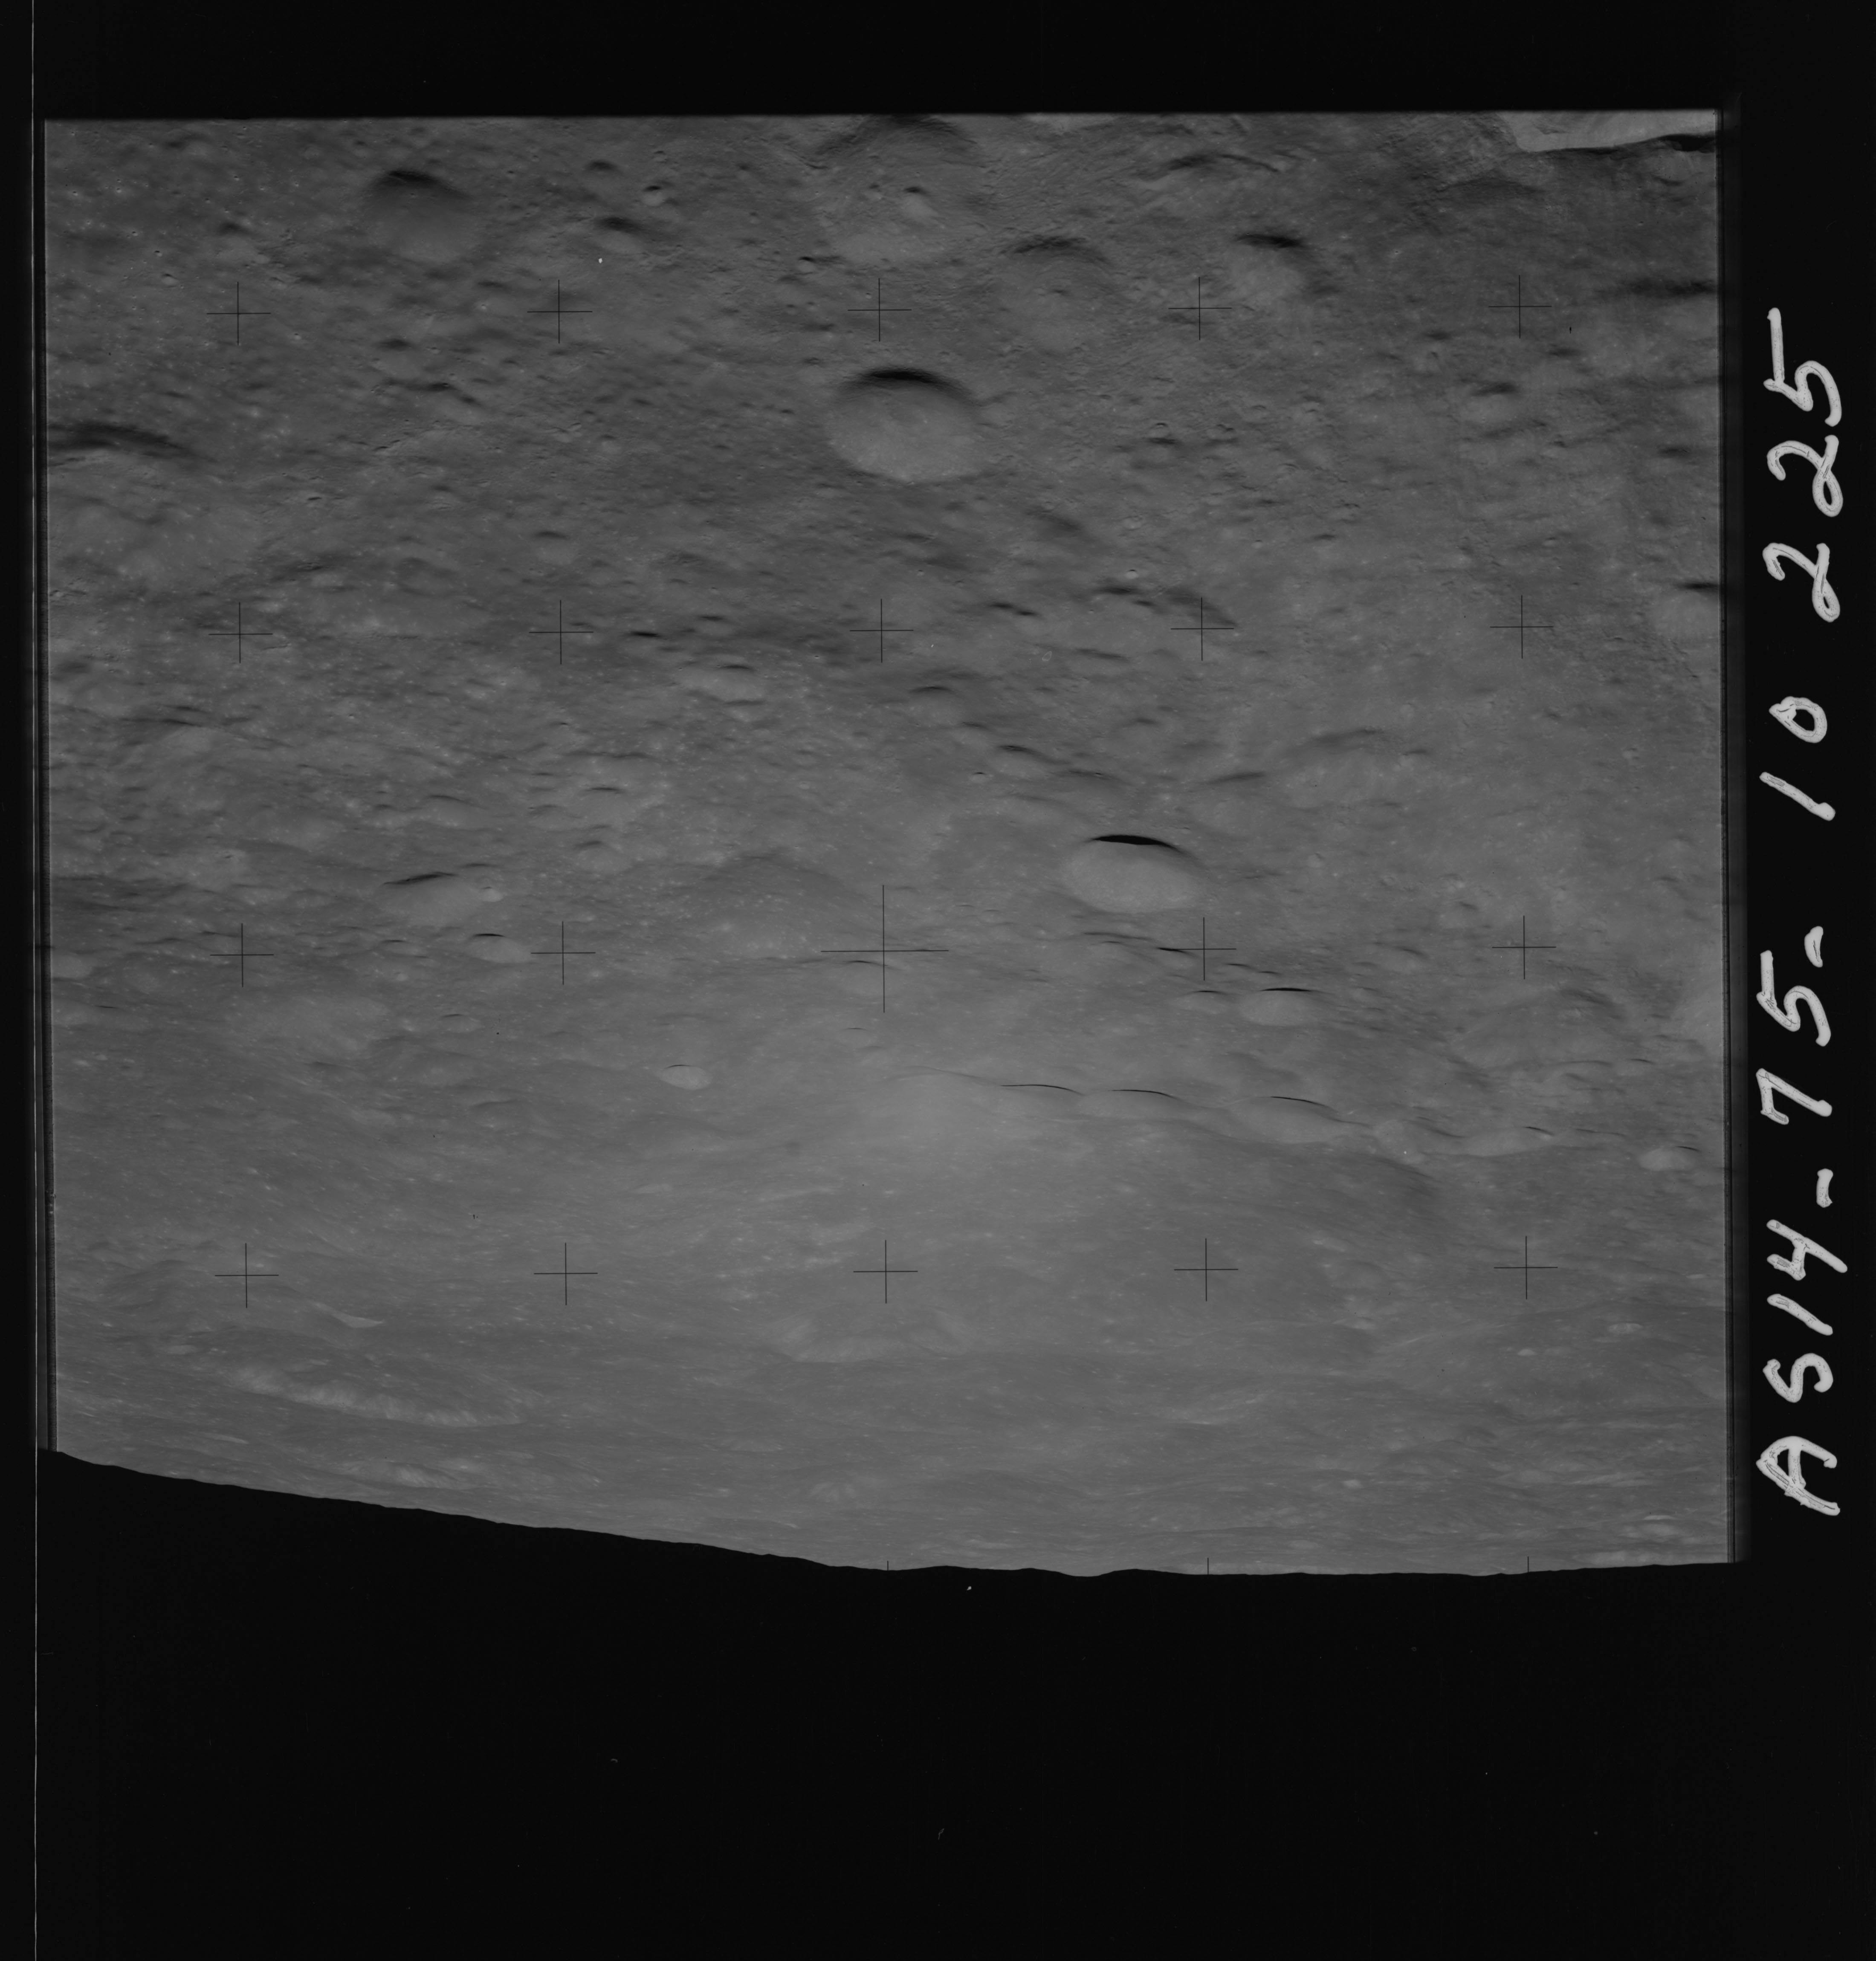 AS14-75-10225 - Apollo 14 - Apollo 14 Mission image - View of the lunar surface looking east towards the Love and Prager 284 Craters.